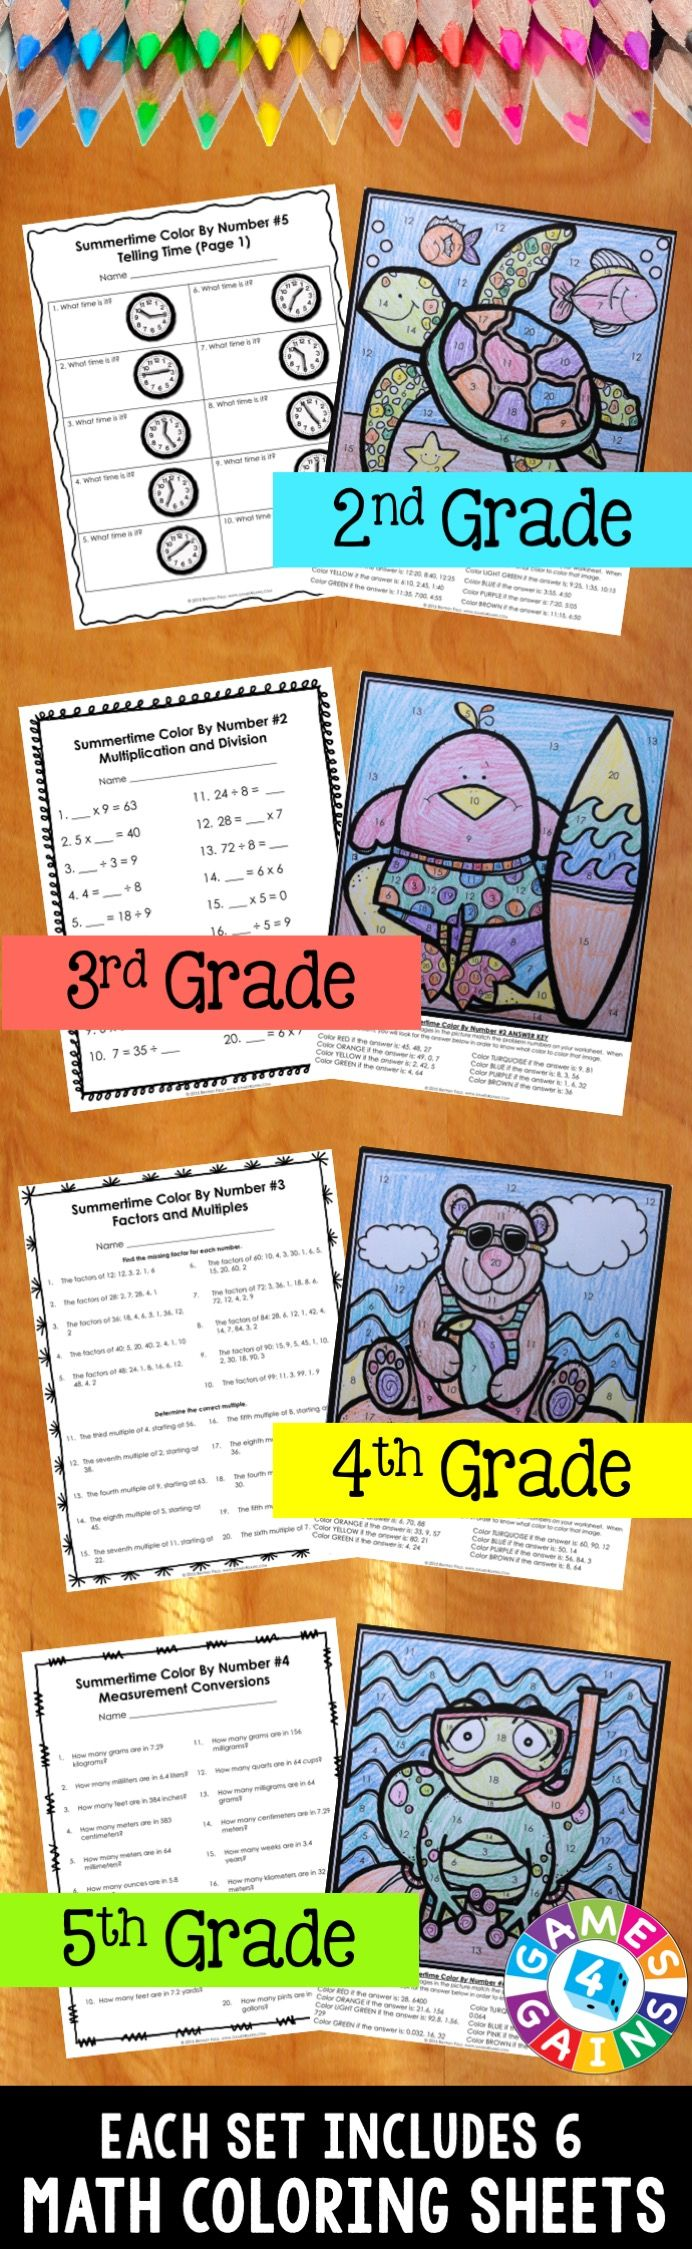 "These Summer Math Color-by-Number activities are the perfect way to review key math skills this month! As one teacher said, ""So much better than traditional color by number! I love the application of other skills and the problem solving that is included!"" Different sets available for 2nd, 3rd, 4th, or 5th grade."